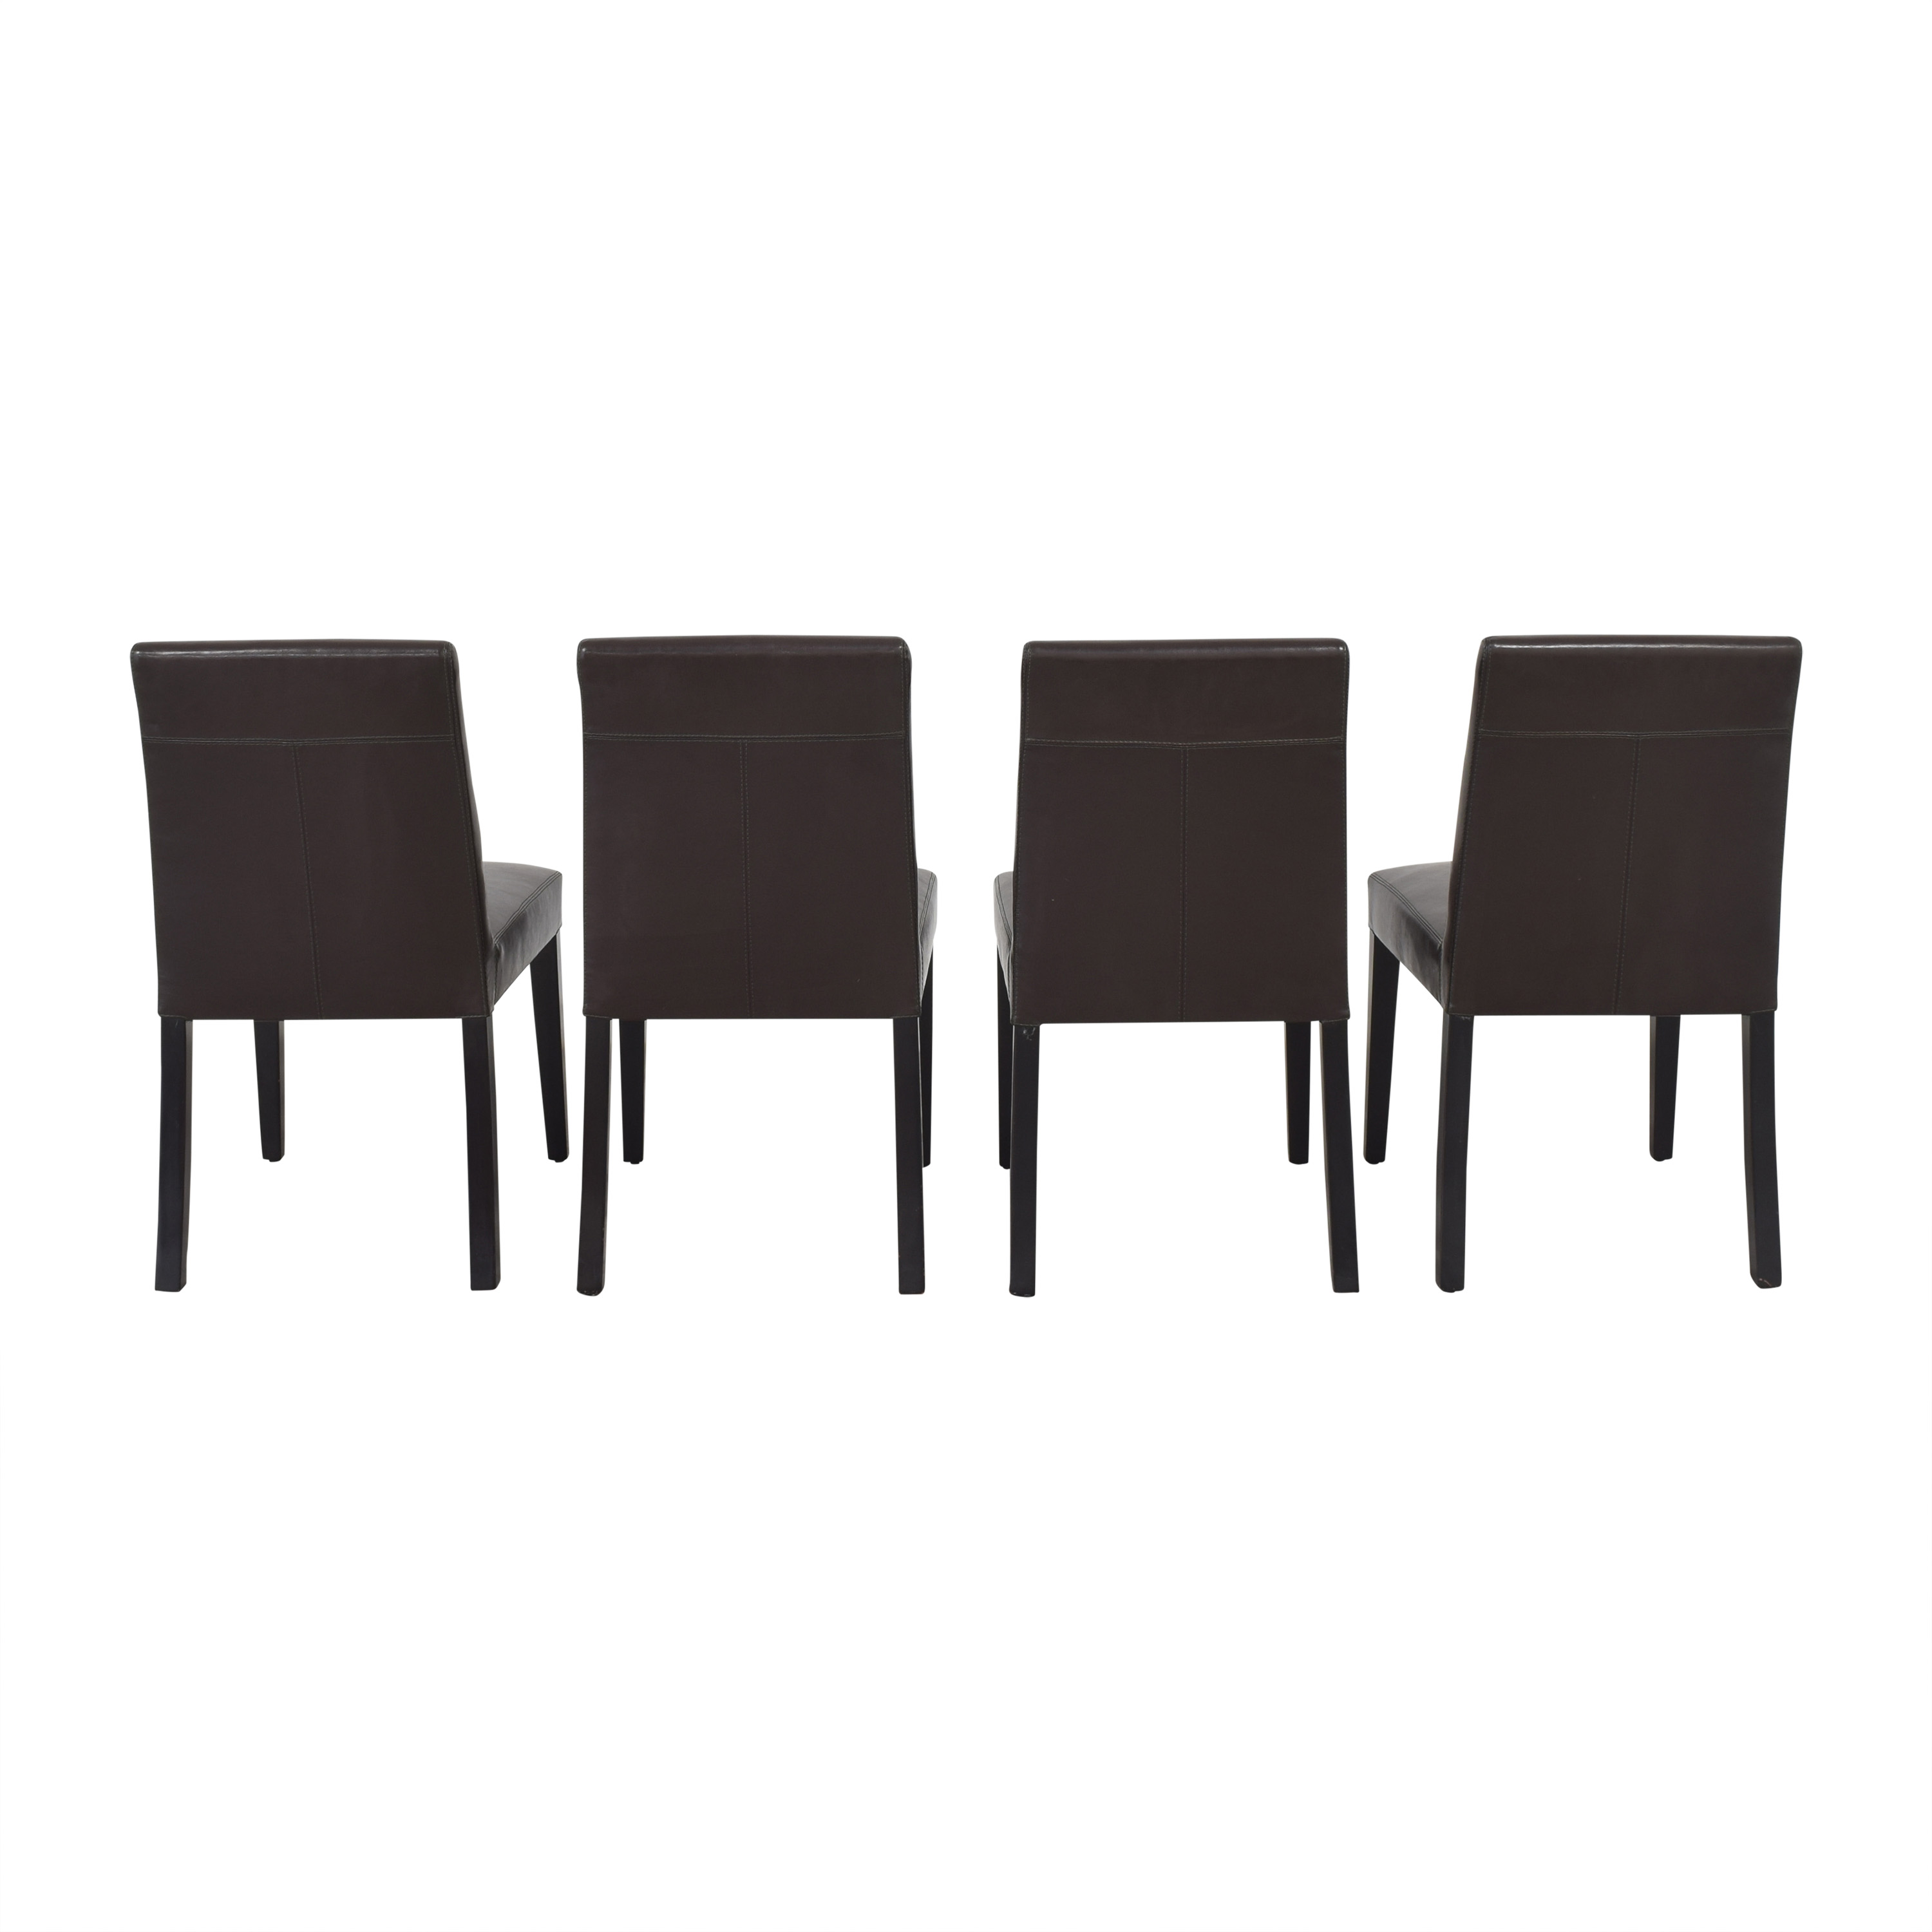 Crate & Barrel Crate & Barrel Pullman Side Chairs dimensions